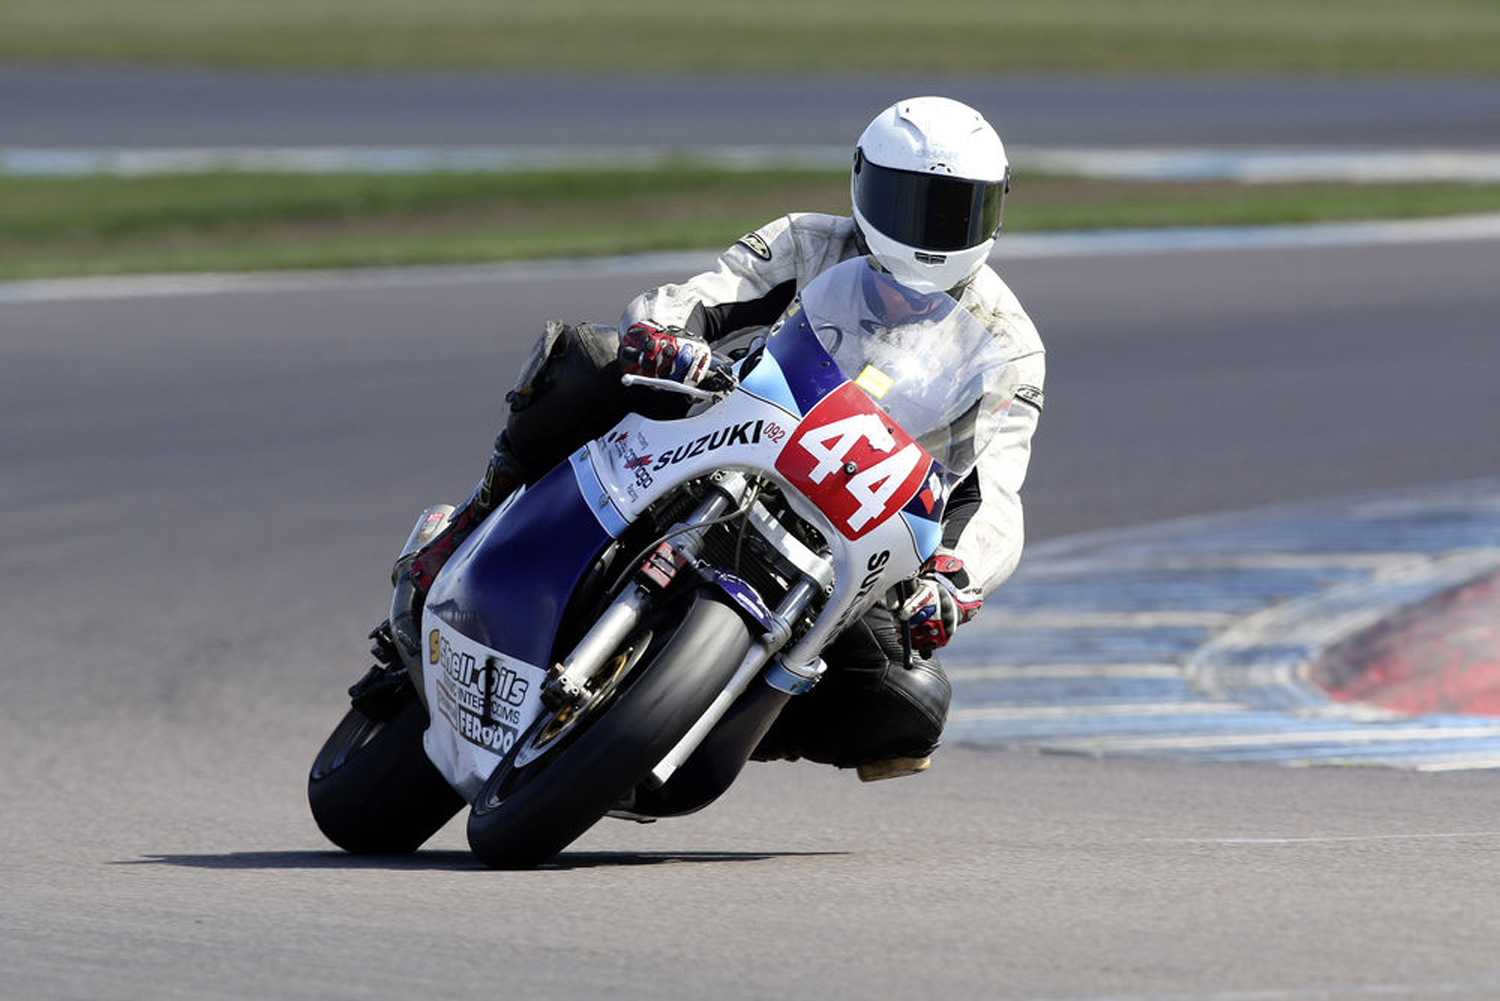 George Hogton-Rustling, a 24-year-old rider who's one of the many flocking to classic racing